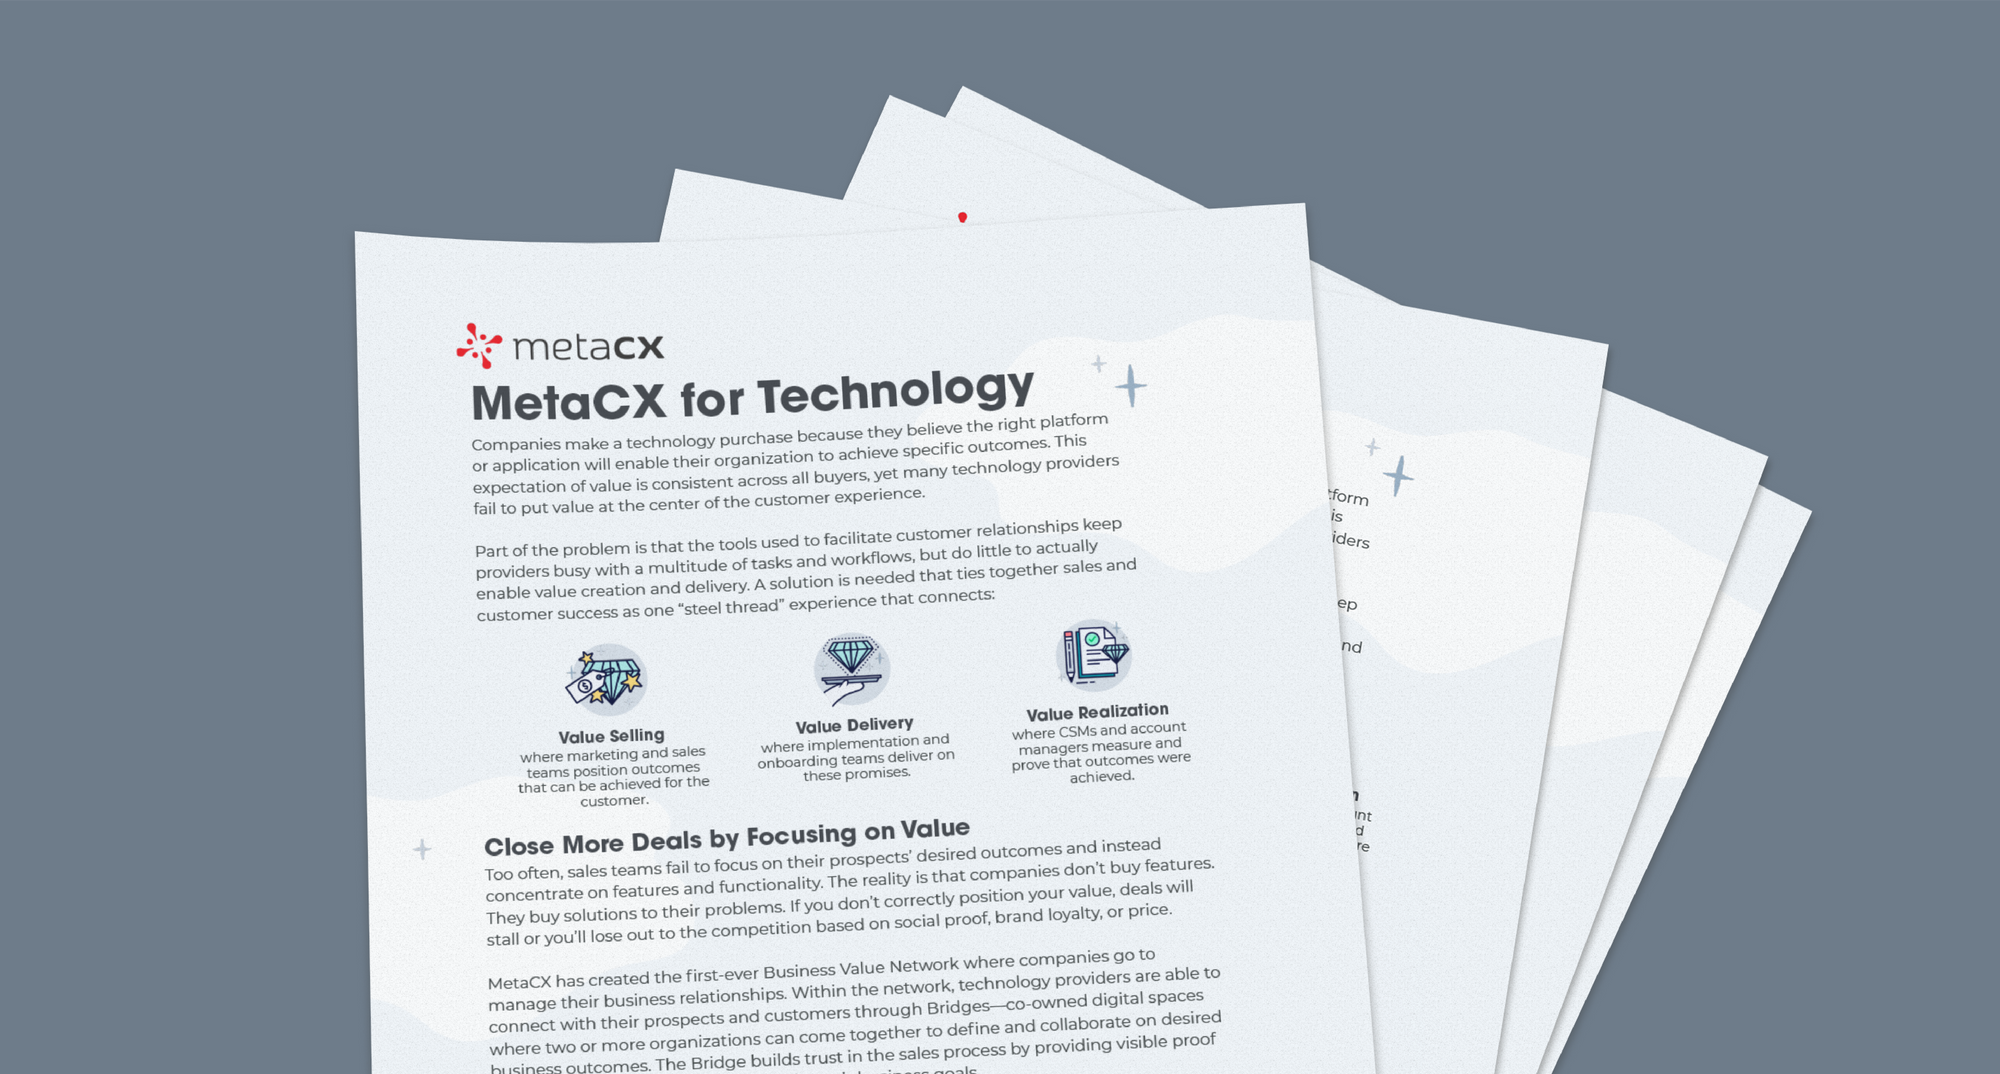 MetaCX for Technology